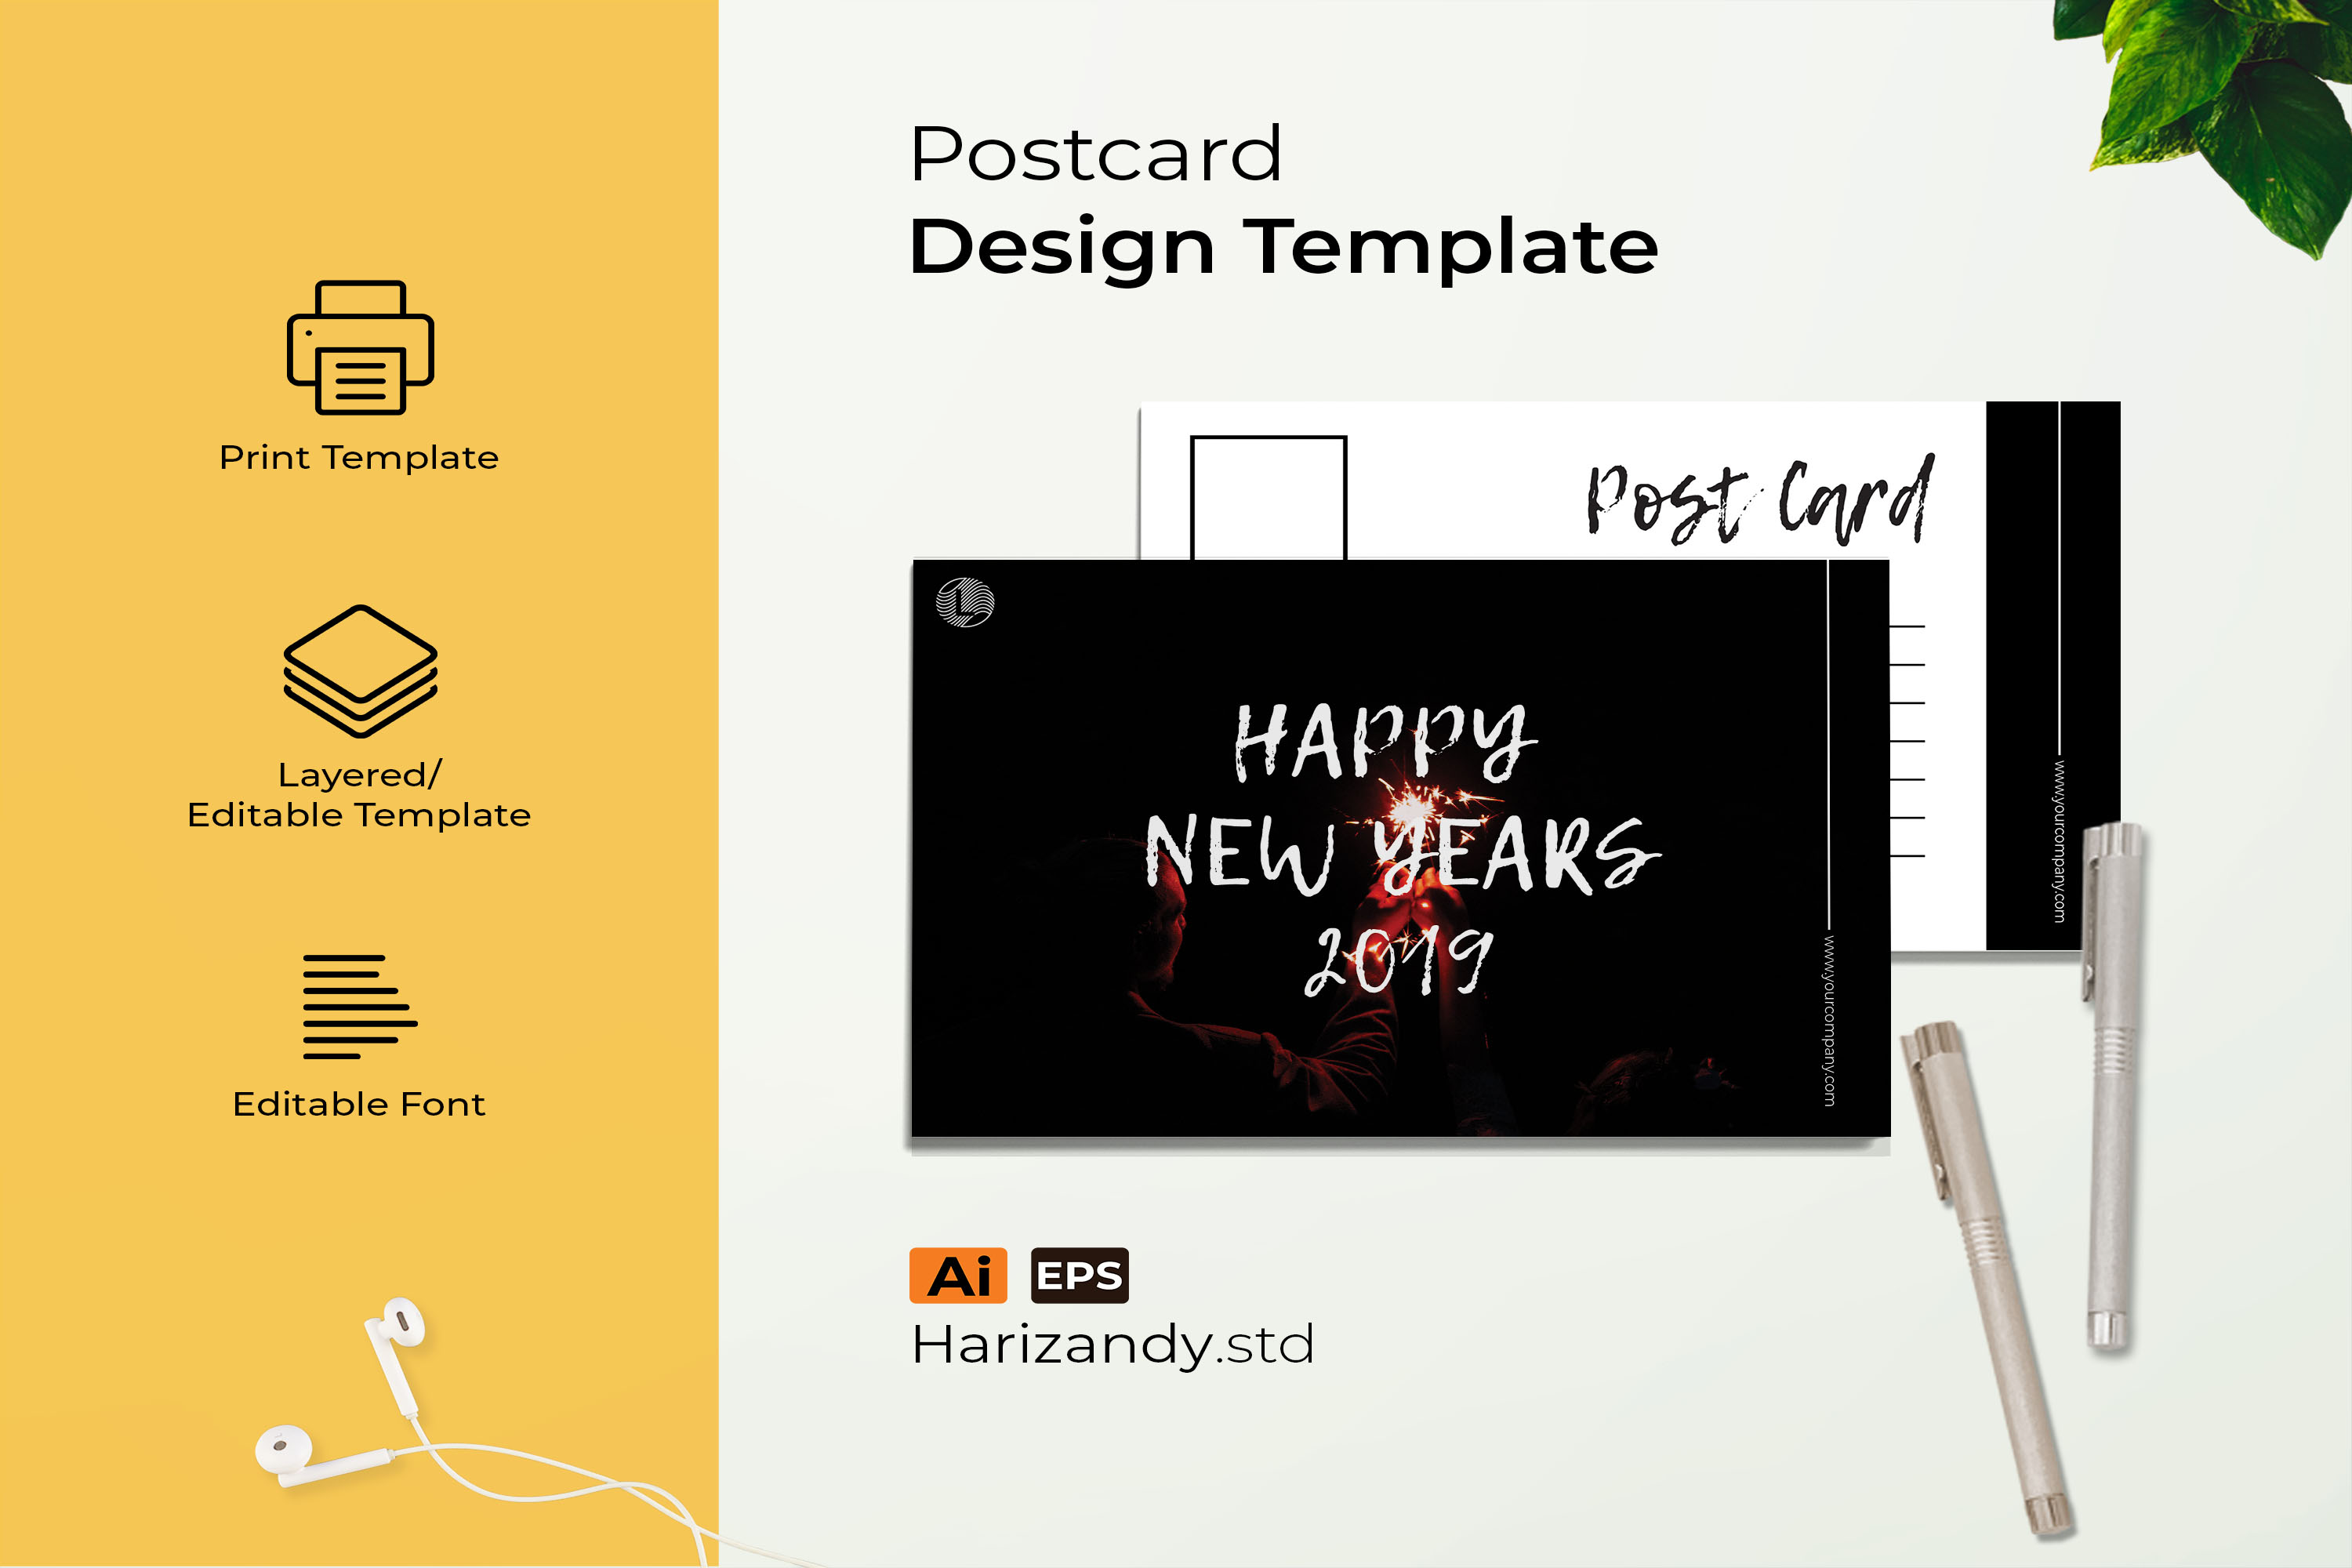 new years post card example image 1